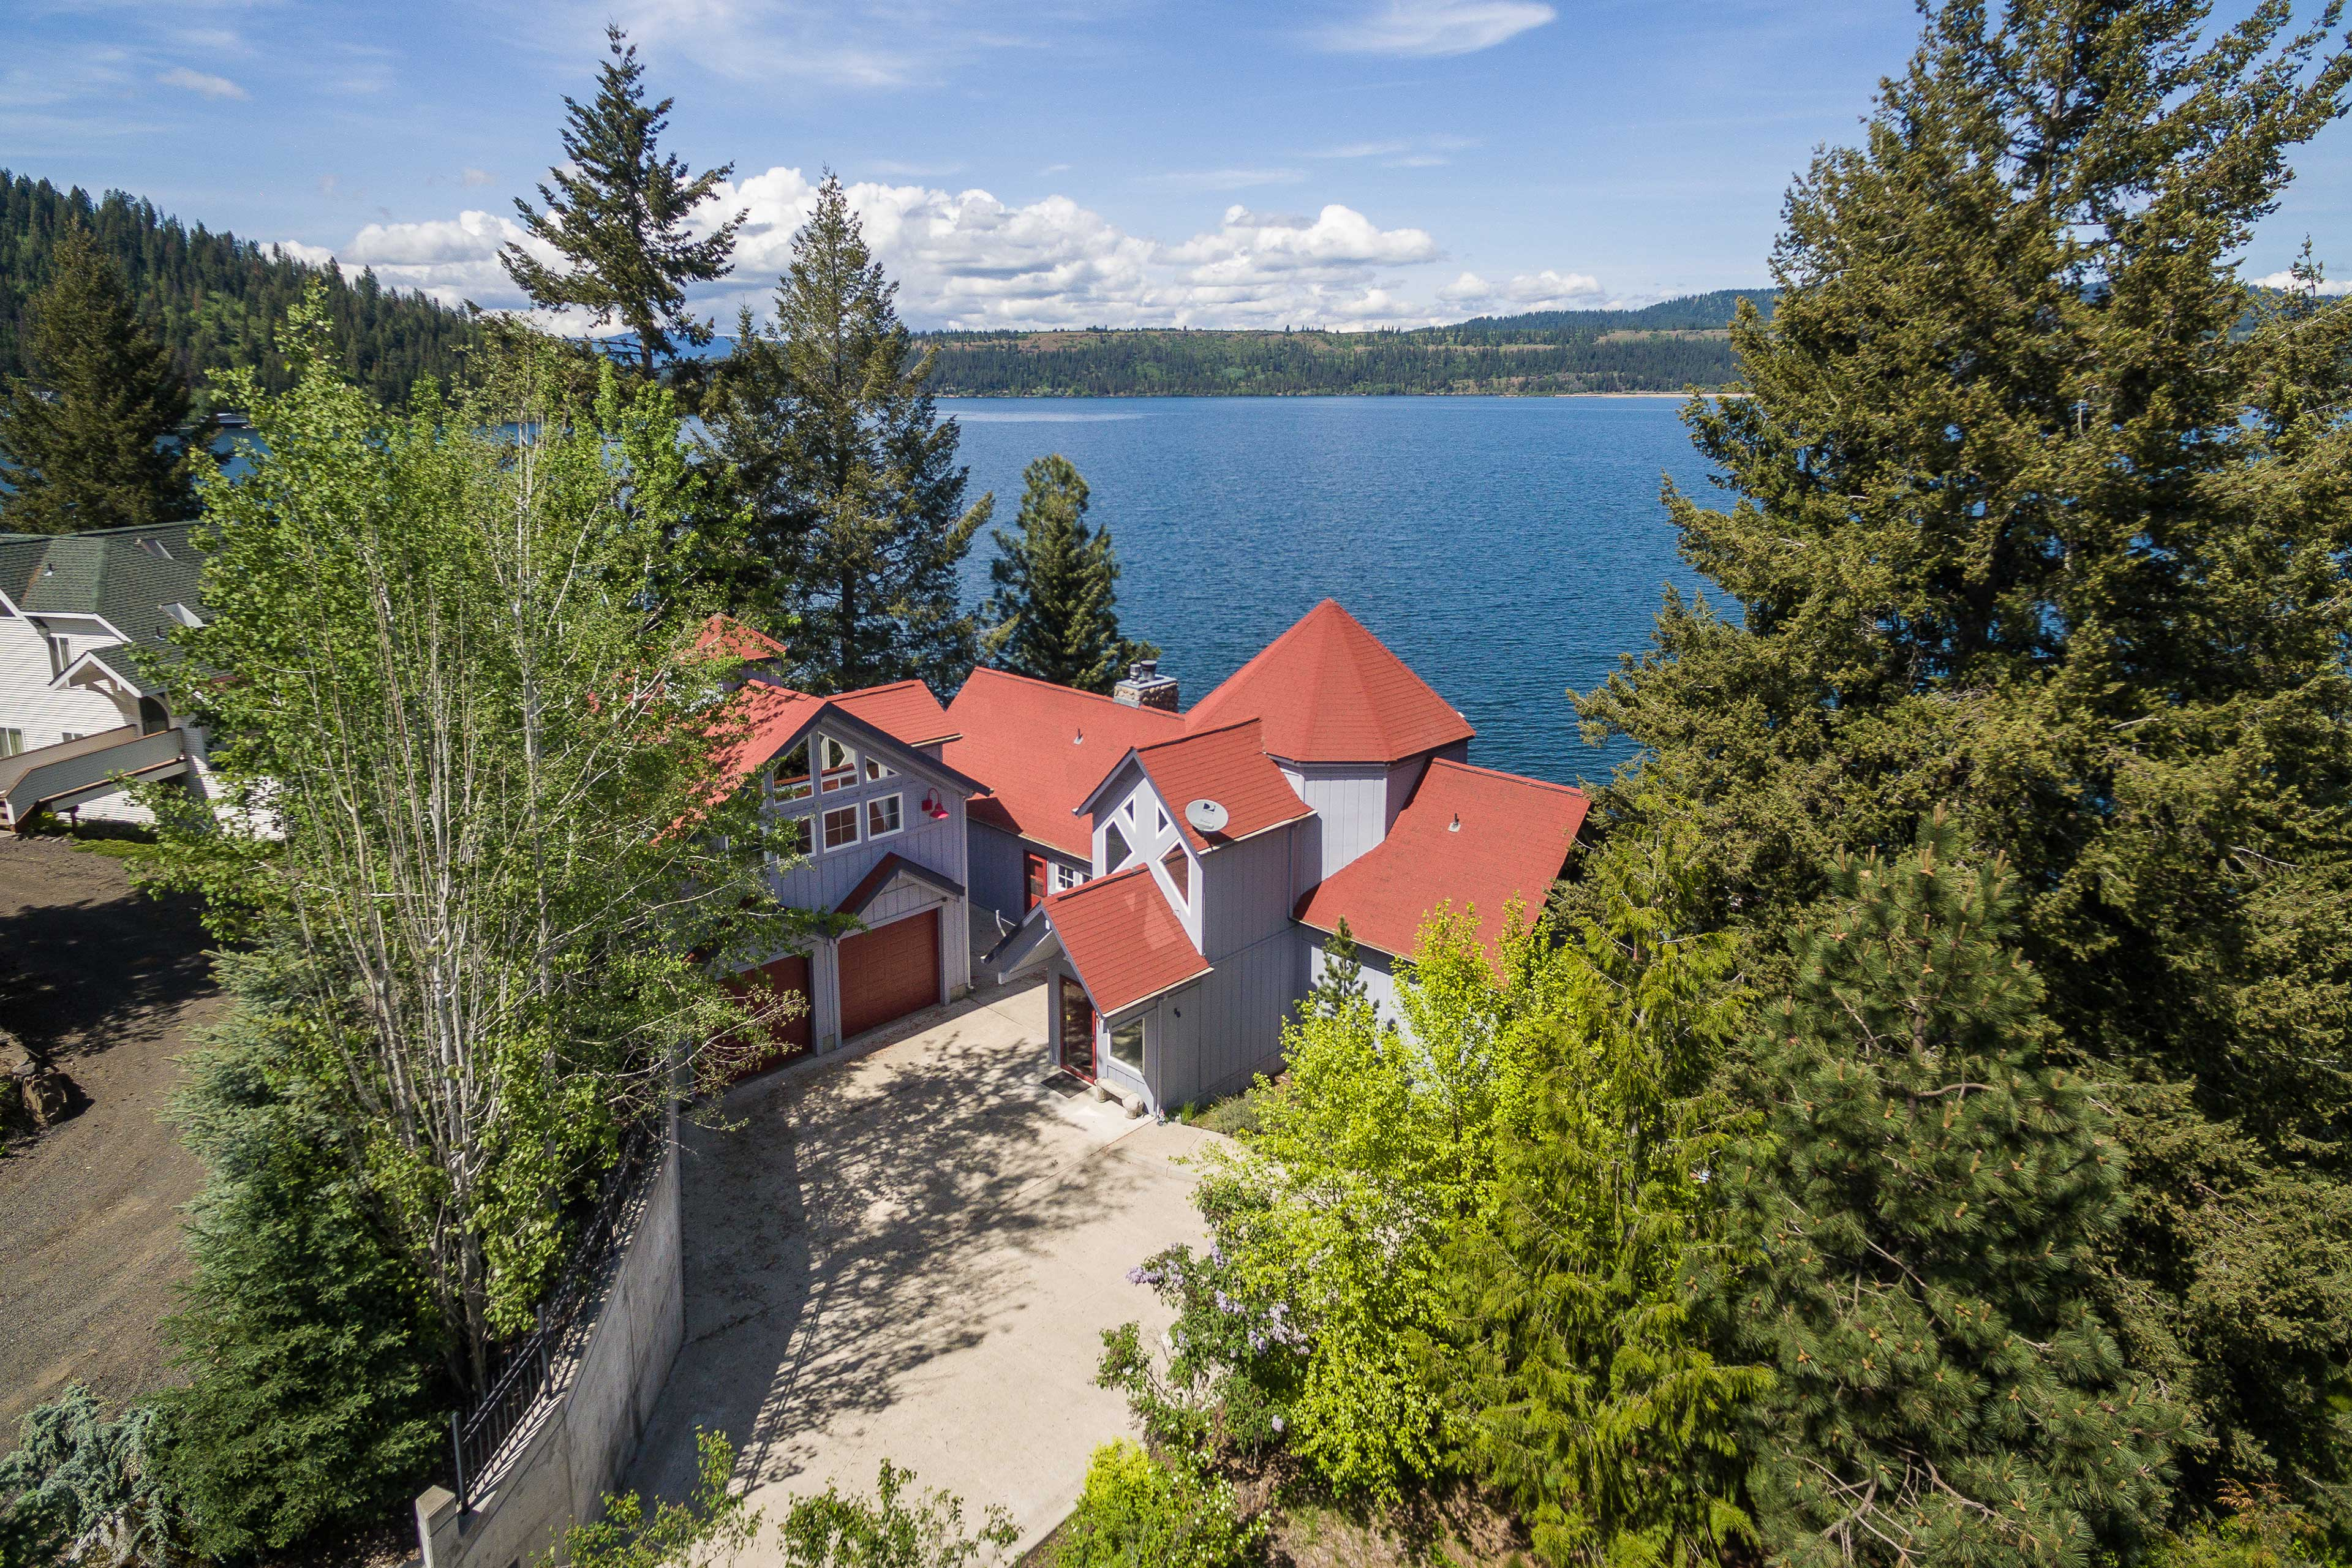 Lakeside adventures await at this beautiful Worley vacation rental!